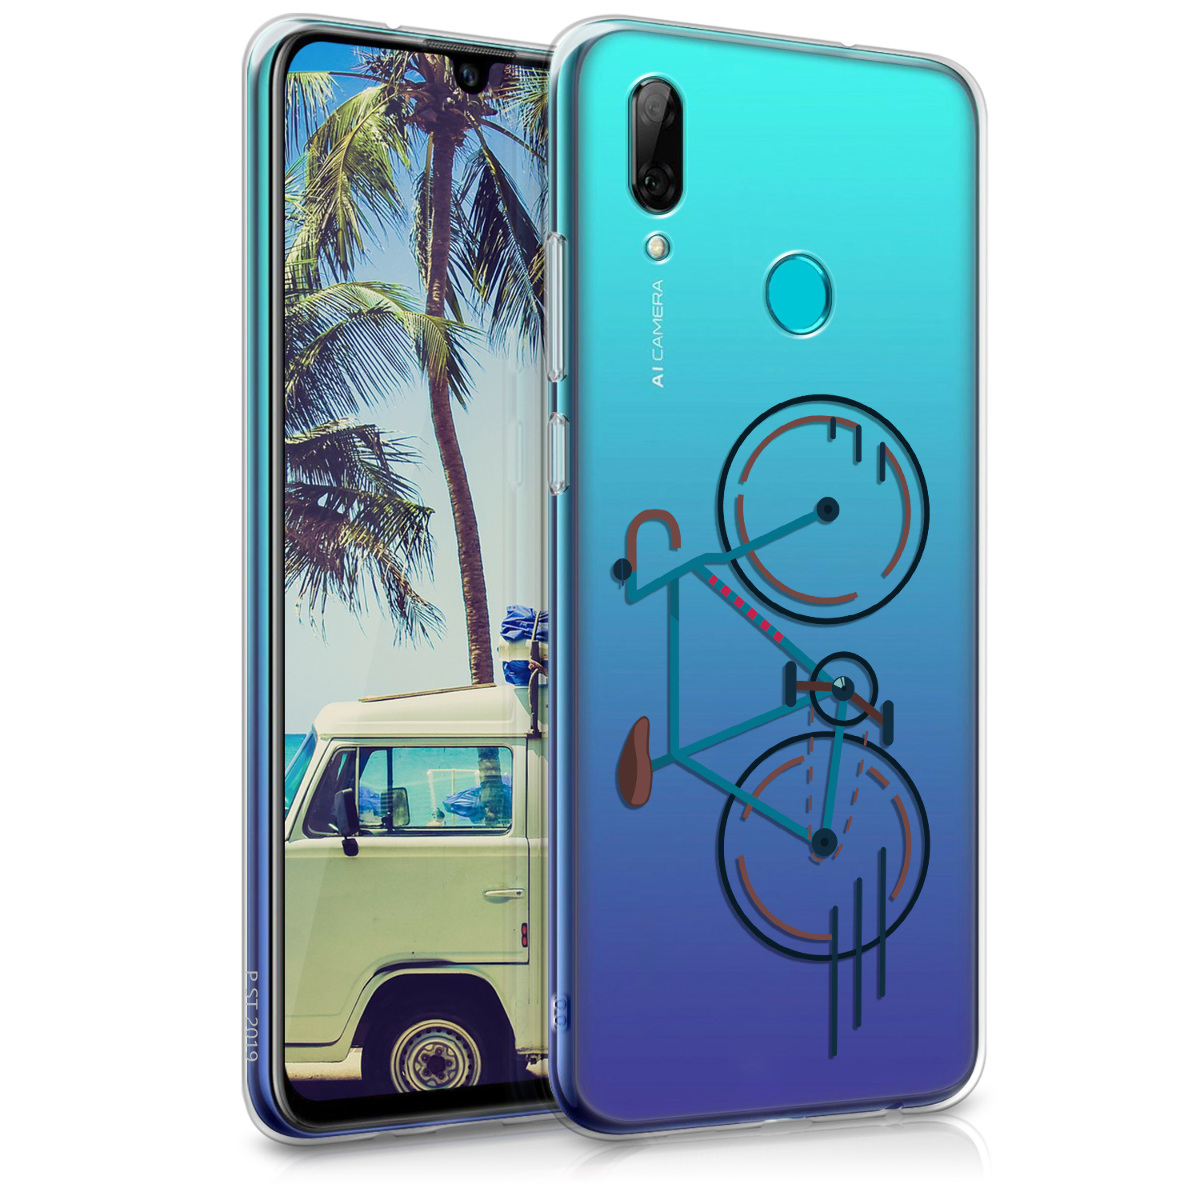 KW Θήκη Σιλικόνης Huawei P Smart 2019 - Blue / Brown / Transparent (47388.25)